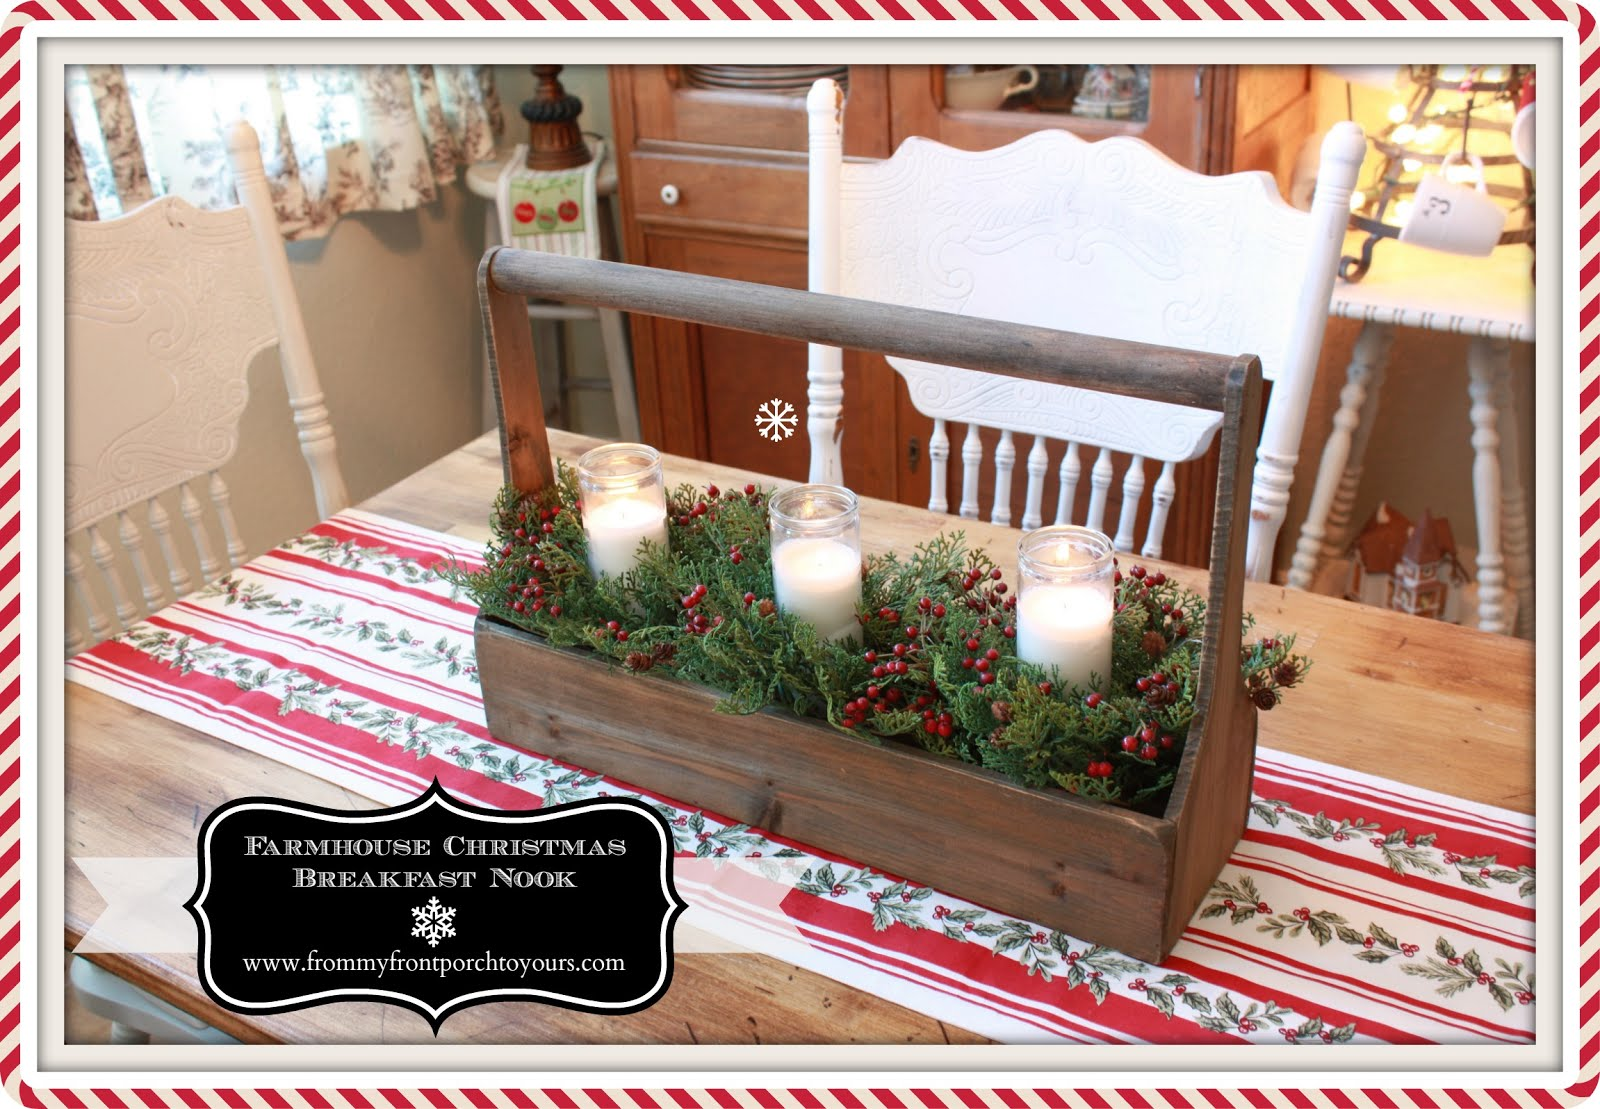 Christmas Kitchen From My Front Porch To Yours Farmhouse Christmas Kitchen 2015